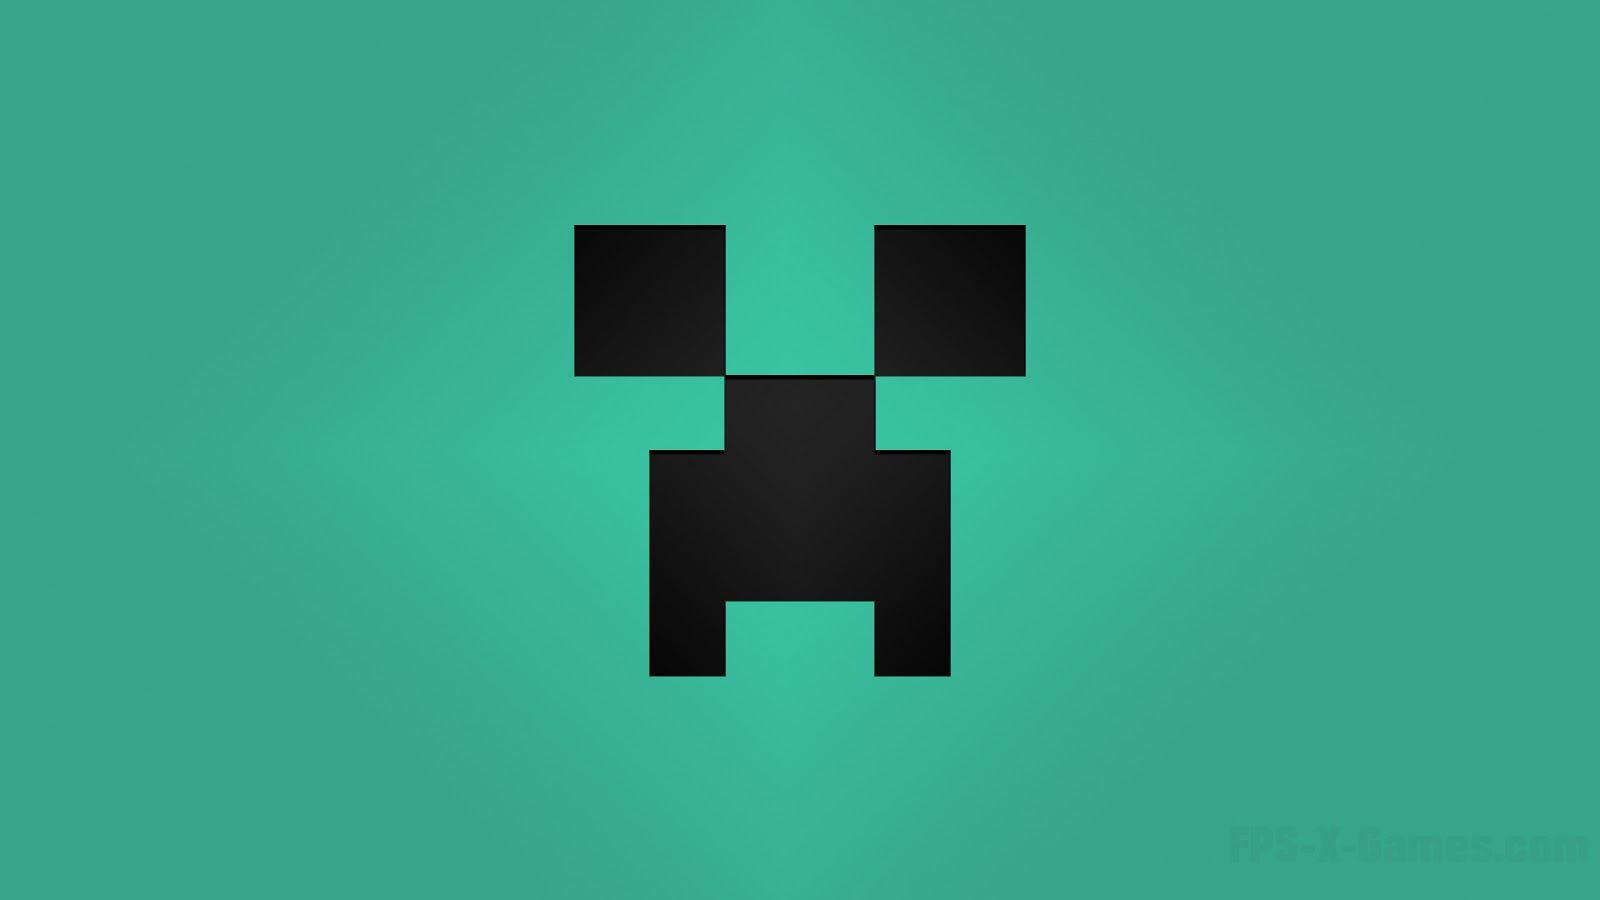 Best Wallpaper Minecraft Desktop - colorful-minecraft-creeper-wallpaper-cyan  Collection_6911100.jpg